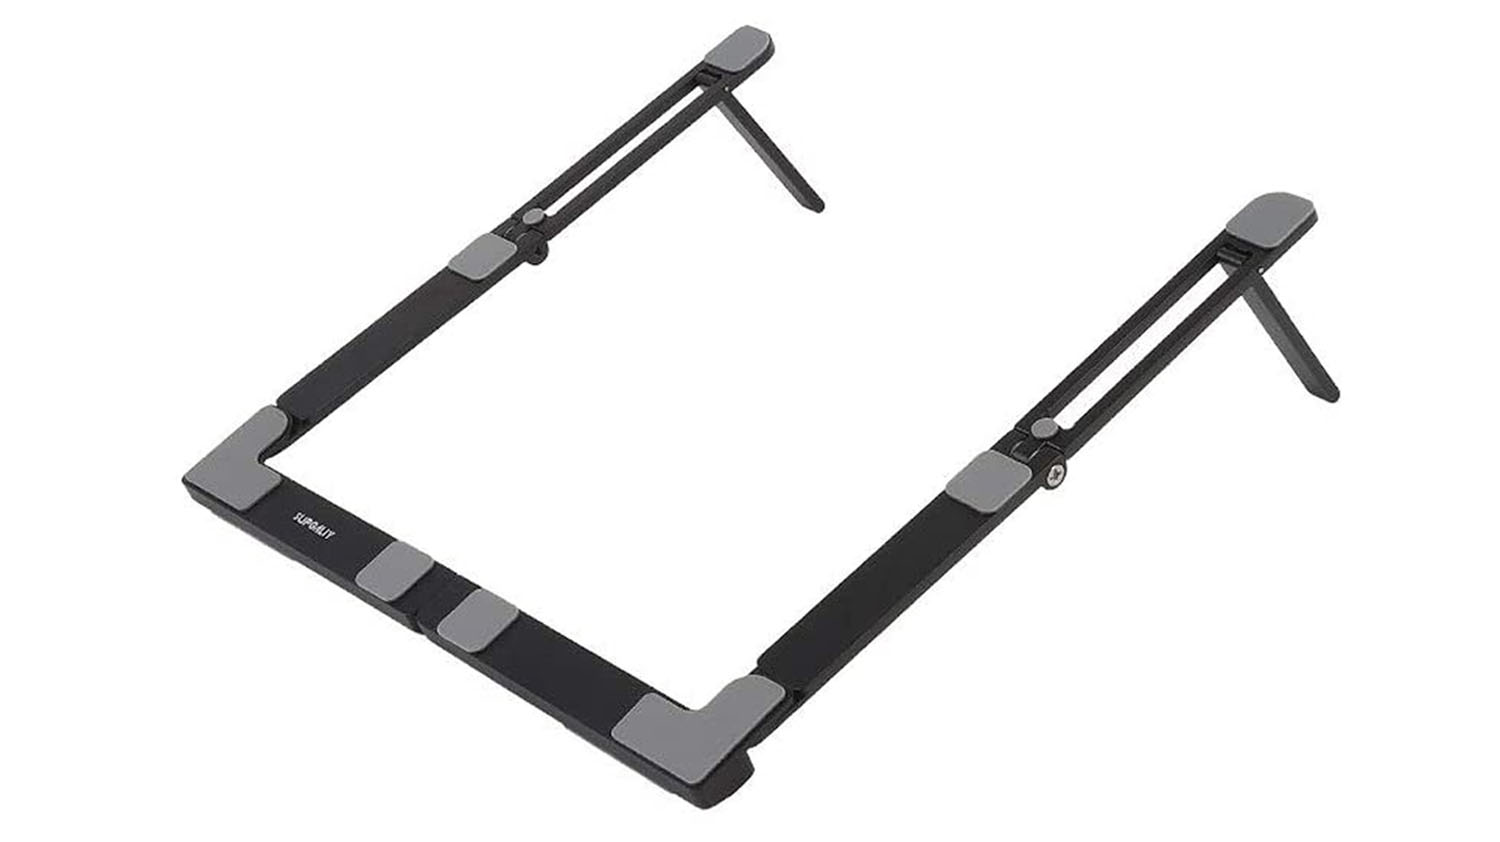 SUPGALIY Portable Laptop Stand